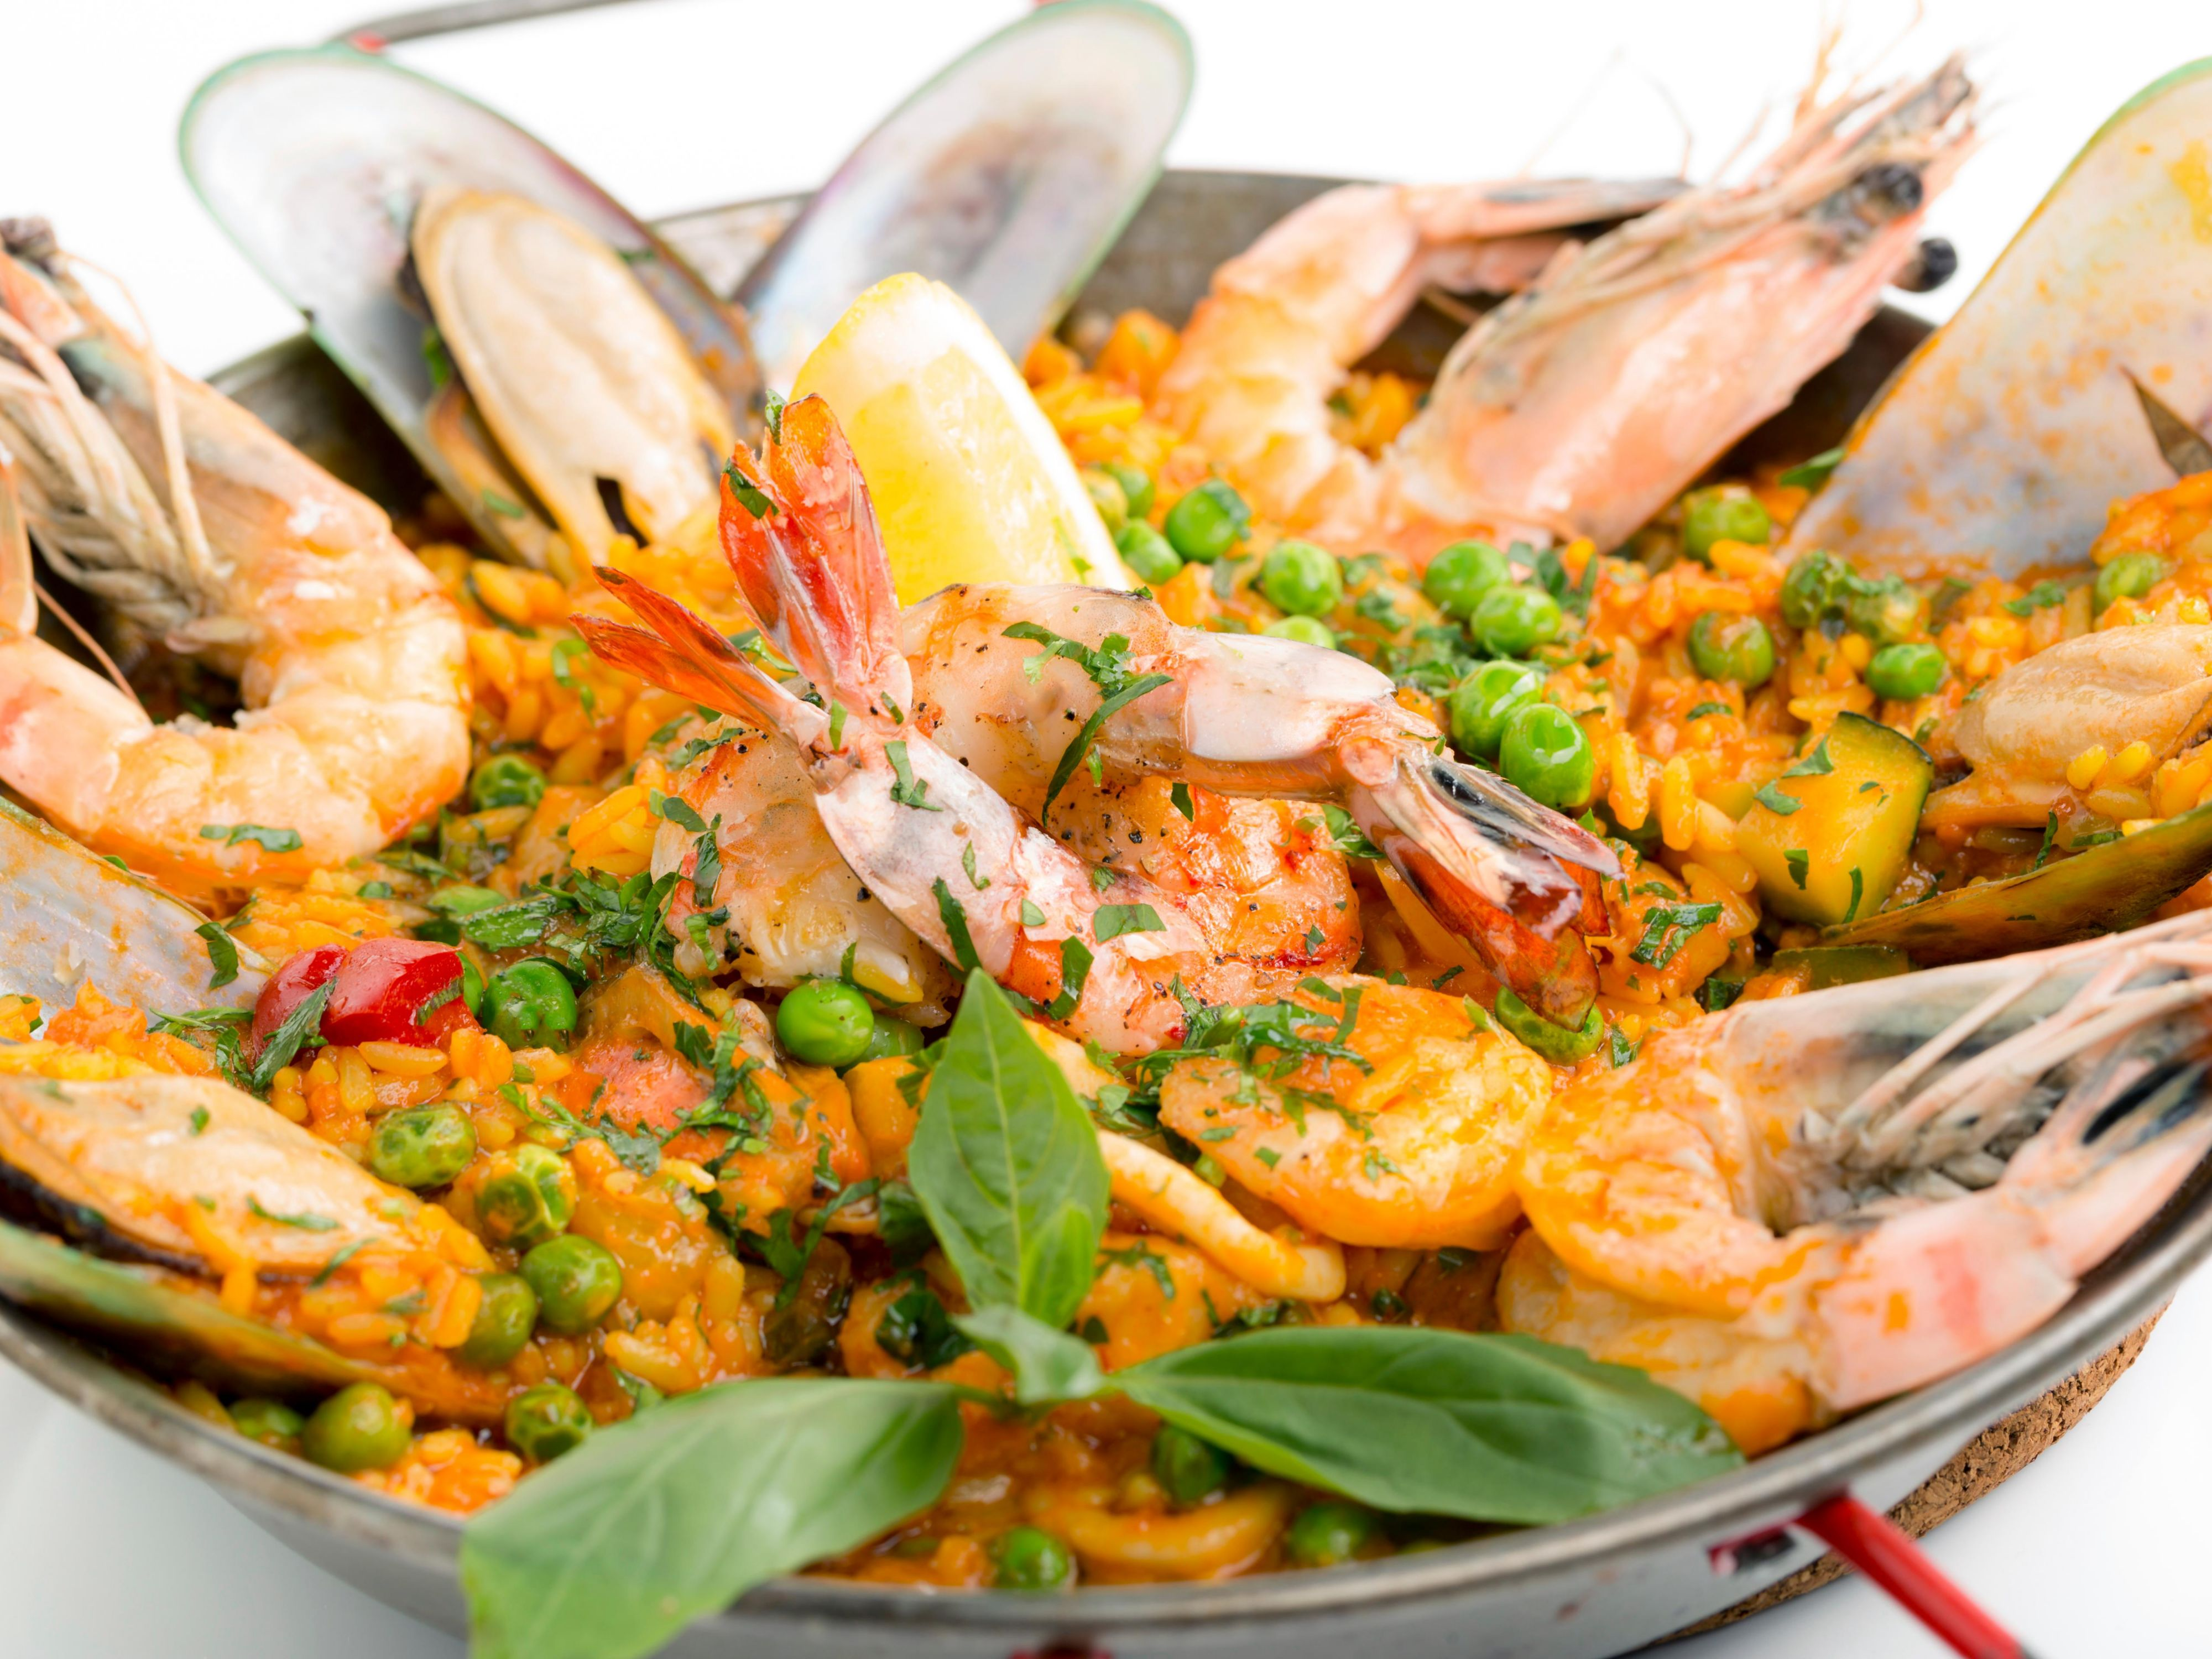 Love seafood, paella or both? We serve it just the way you like it